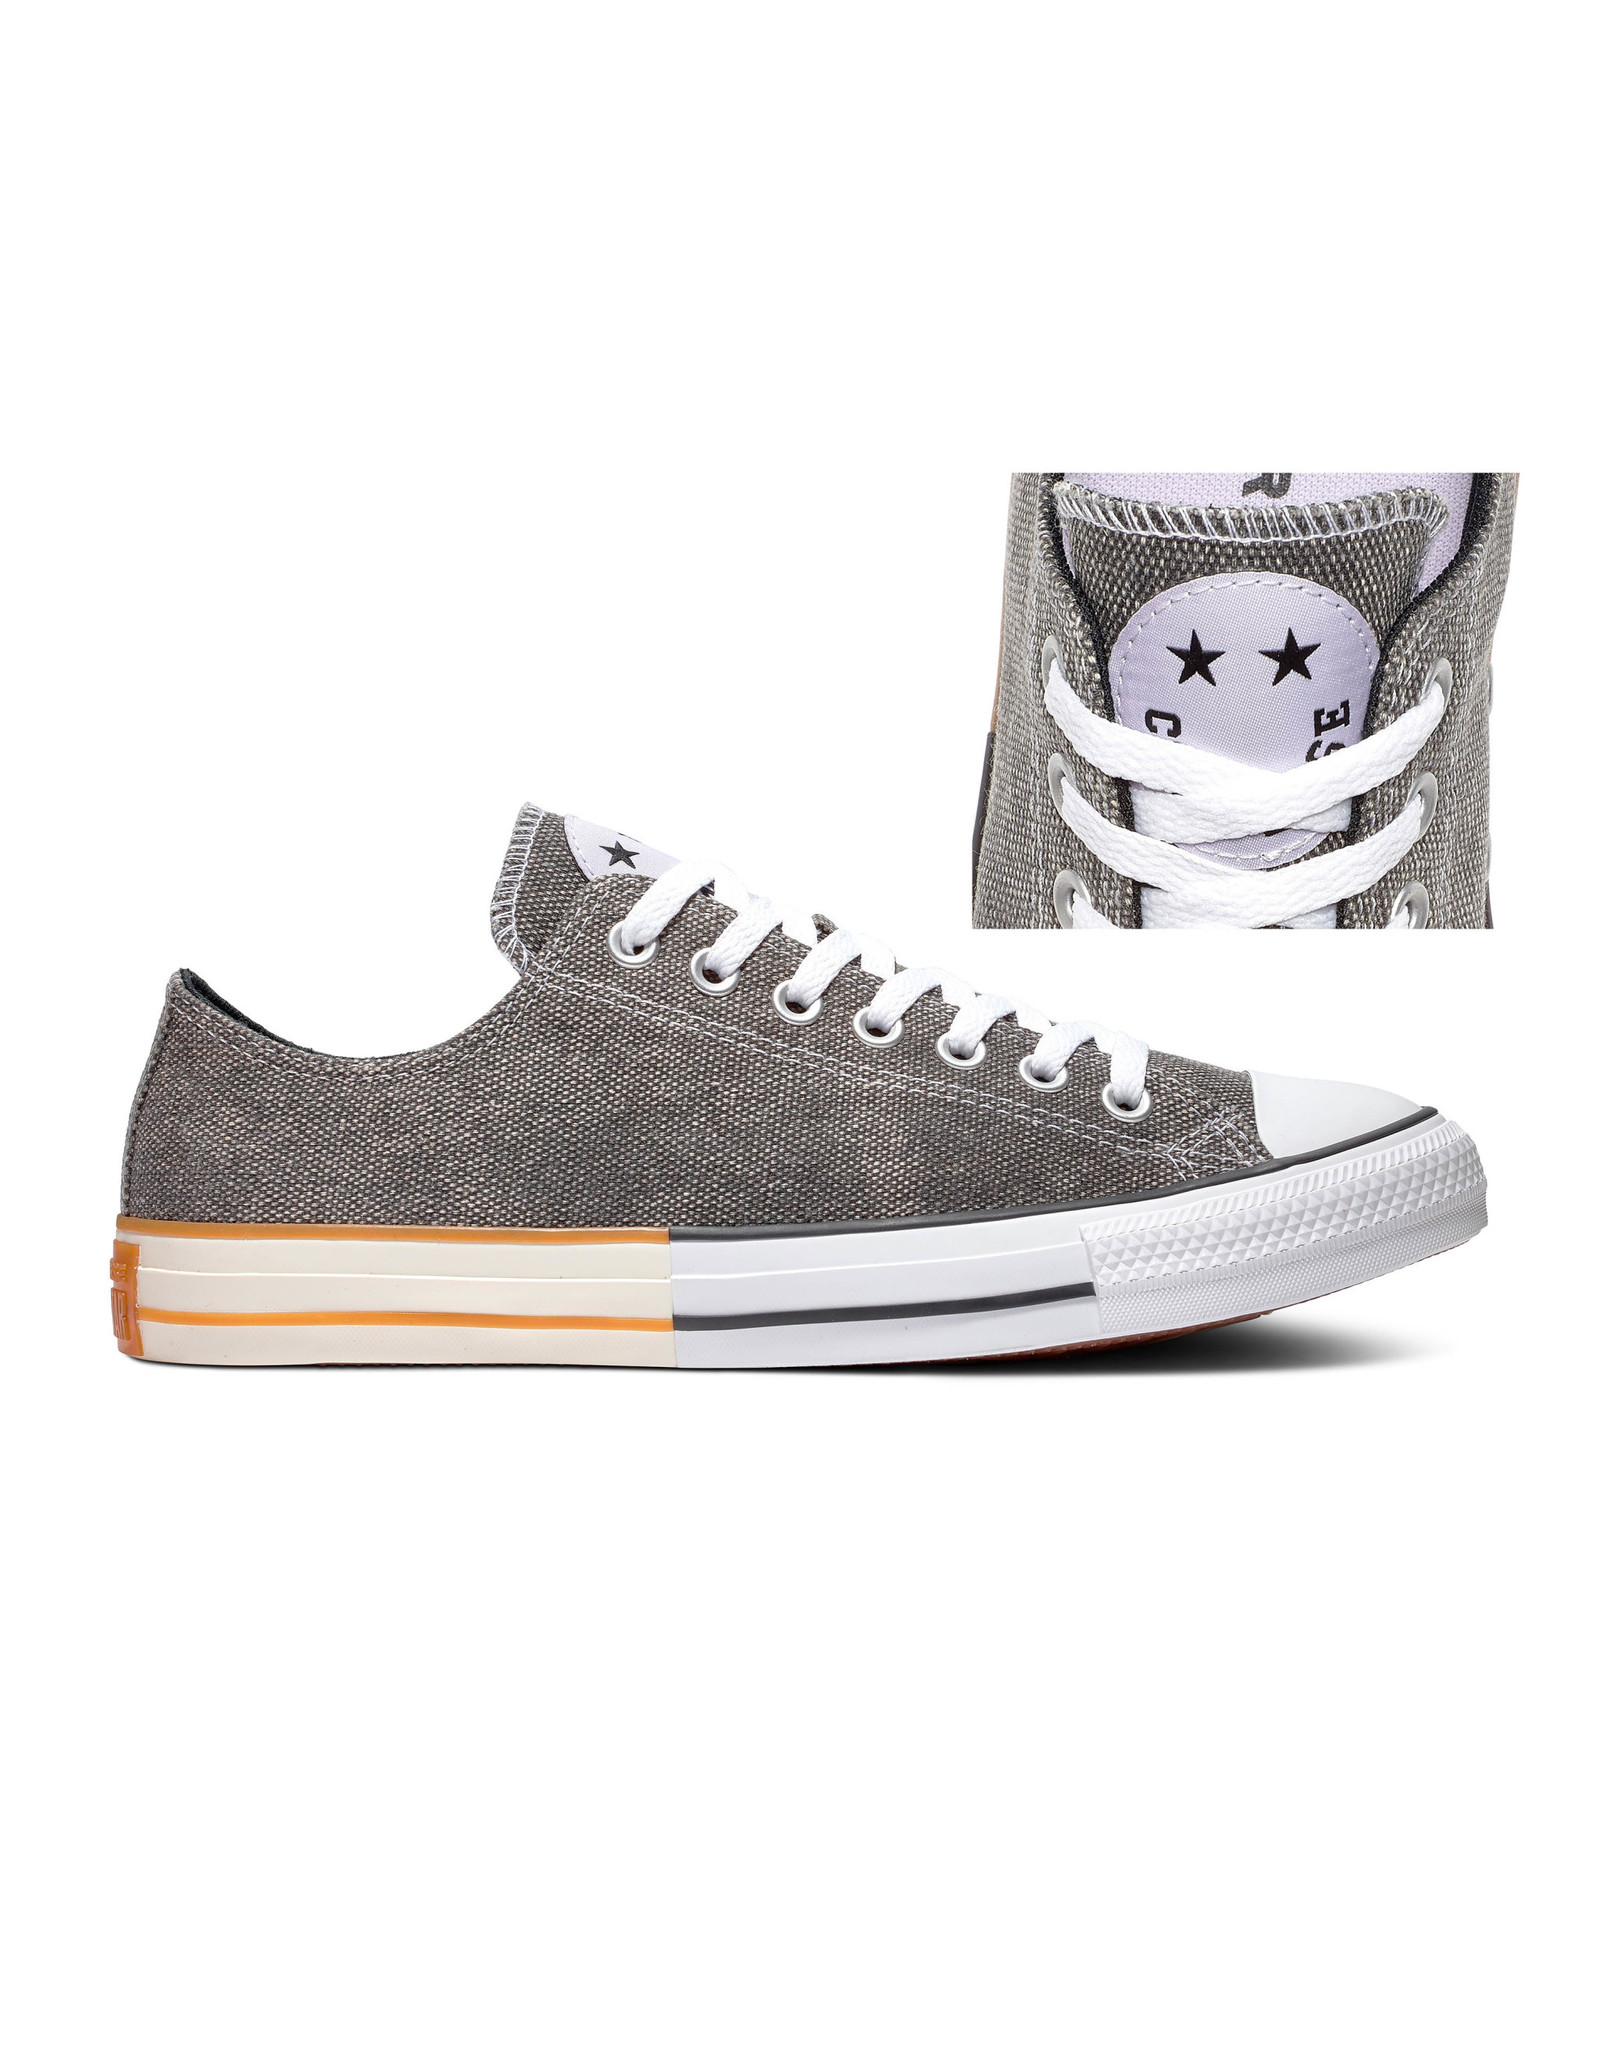 CONVERSE CHUCK TAYLOR OX BLACK/MOONSTONE VIOLET/WHITE C14MOON-167665C